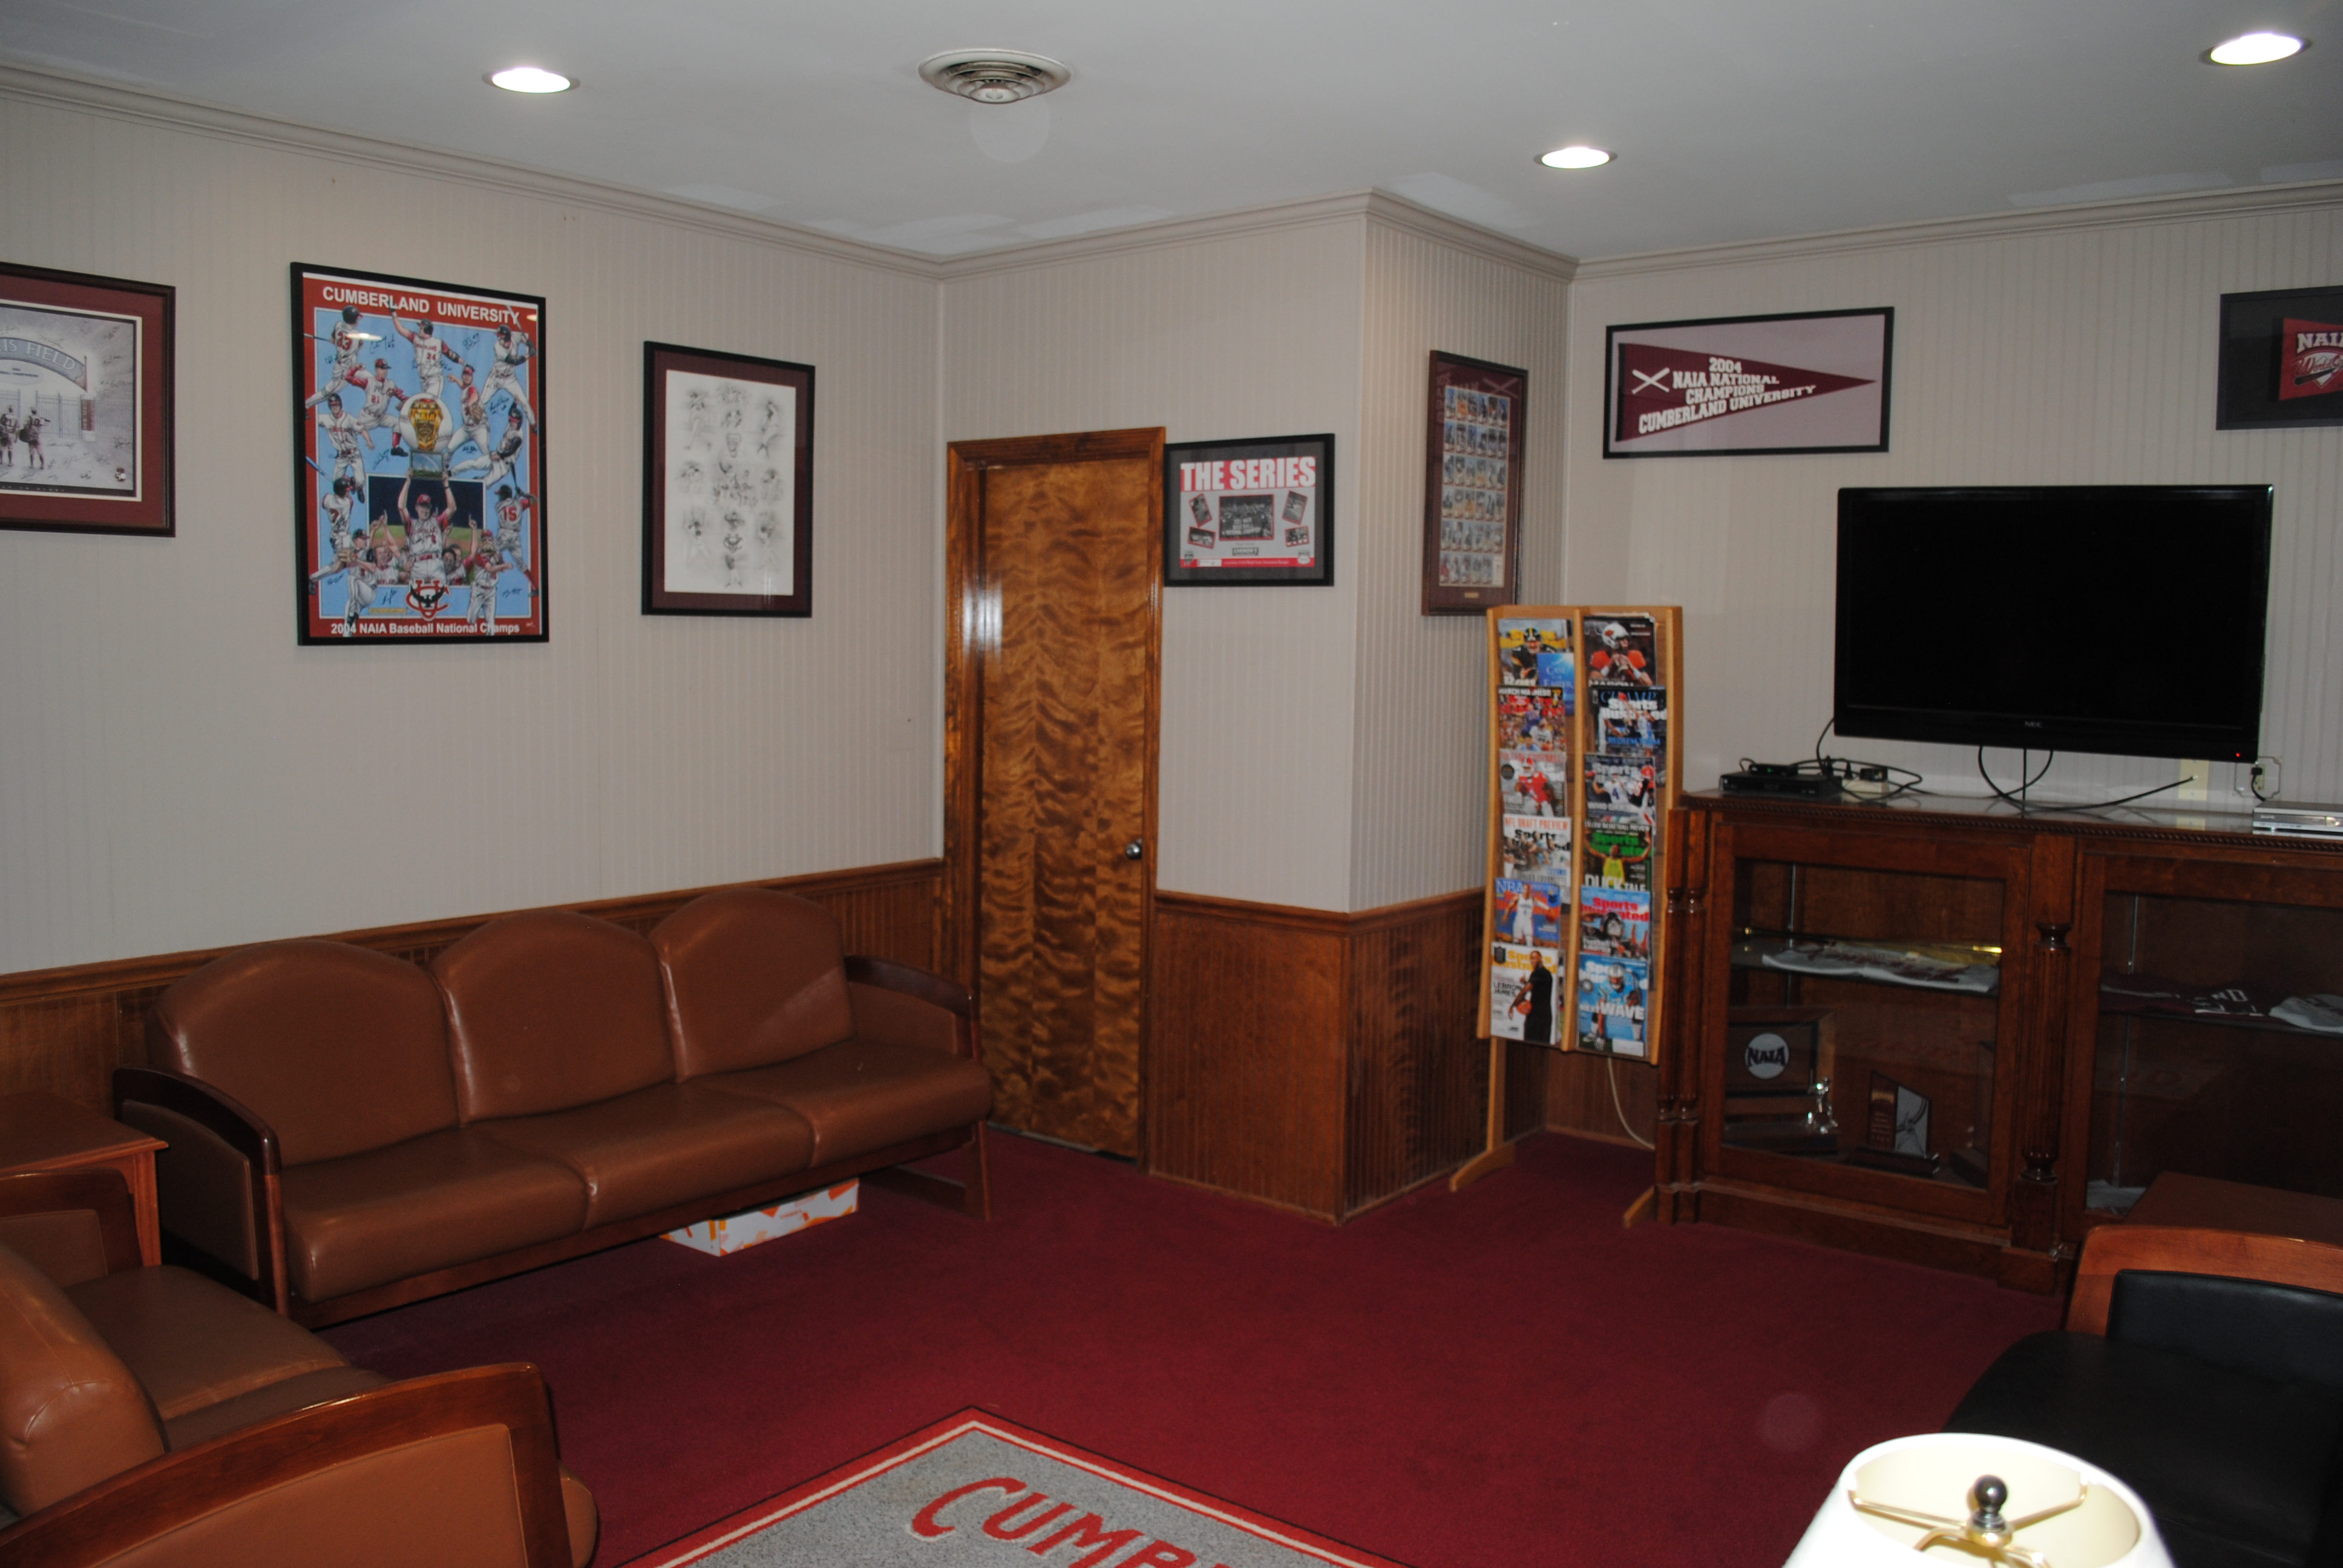 Jeanette C. Rudy Clubhouse Picture 4